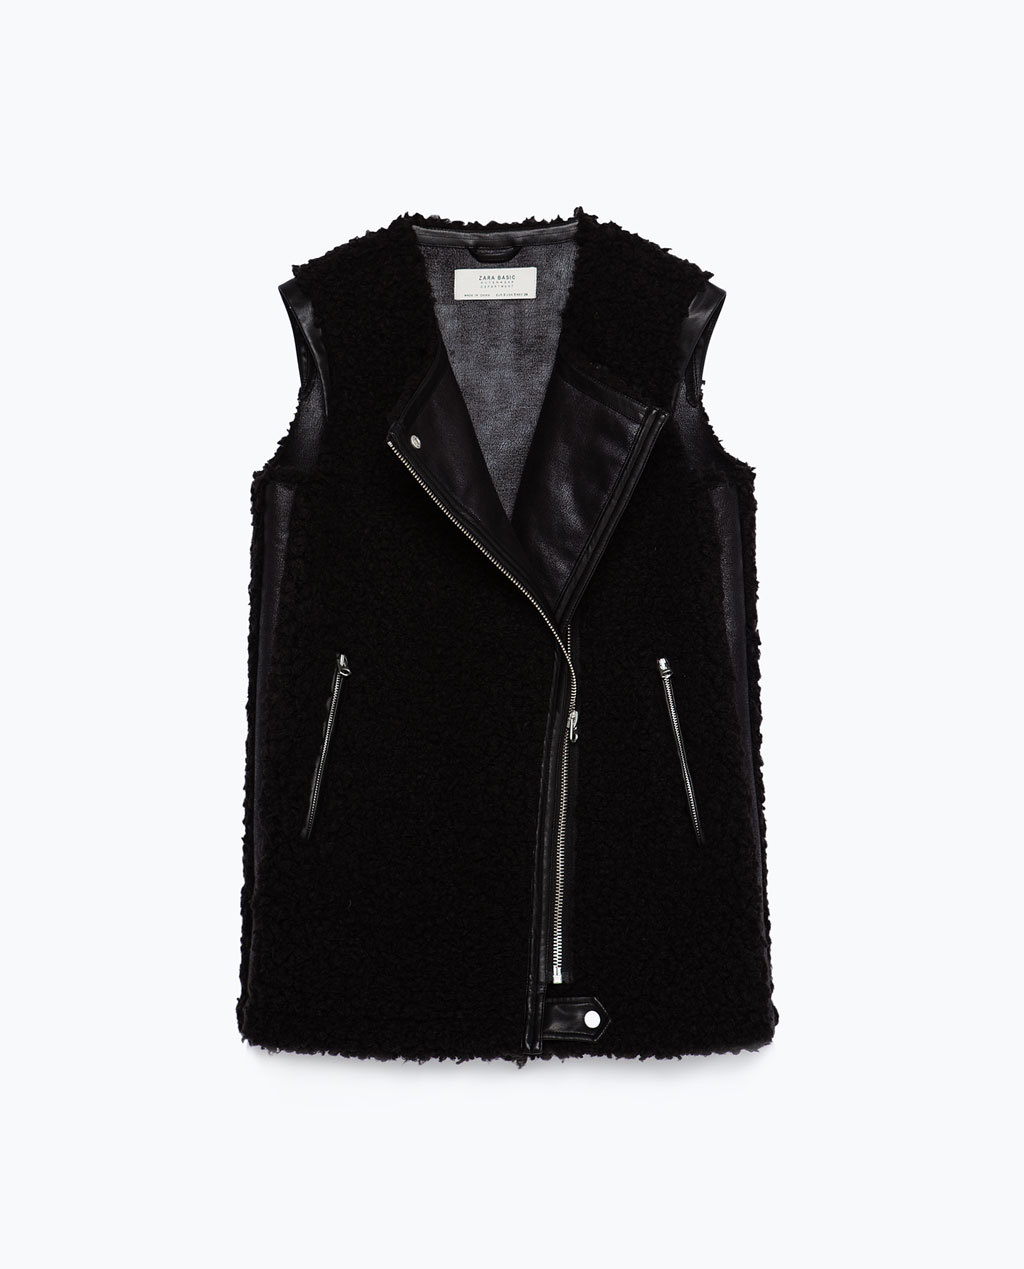 Biker Waistcoat - pattern: plain; sleeve style: sleeveless; collar: asymmetric biker; predominant colour: black; occasions: casual, creative work; length: standard; fit: straight cut (boxy); fibres: polyester/polyamide - 100%; style: waistcoat; sleeve length: sleeveless; texture group: fur; collar break: medium; pattern type: fabric; season: a/w 2015; wardrobe: highlight